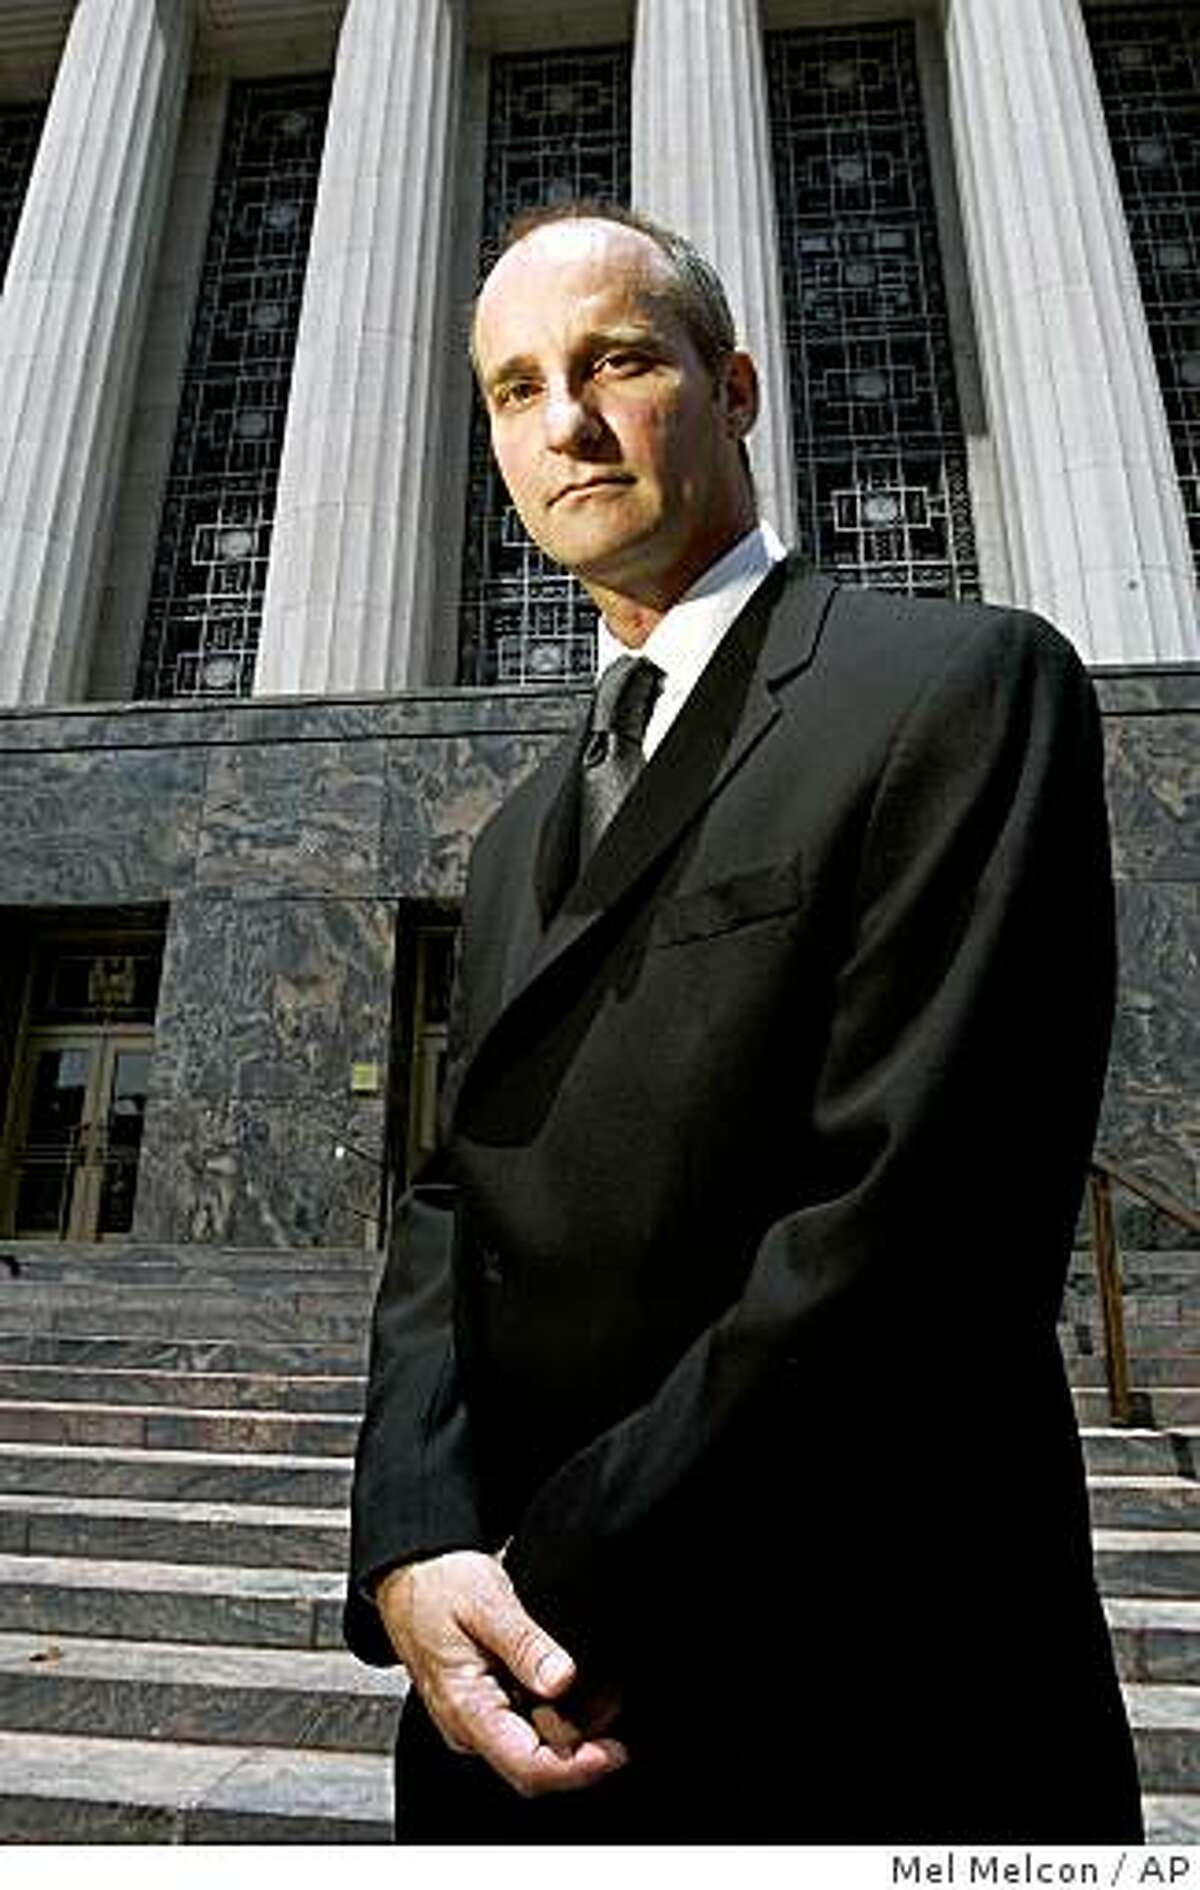 This July 25, 2008 photo shows Charlie Lynch standing outside the U.S. Courthouse in Los Angeles. Lynch is the owner of a medical marijuana dispensary in Morro Bay, Calif. A hearing is scheduled Thursday April 23, 2009, in the case of Lynch, convicted of running a medical marijuana dispensary in Morrow Bay. (AP Photo/Los Angeles Times, Mel Melcon) ** MANDATORY CREDIT, NO SALES, NO FOREIGN, NO MAGS, NO TELEVISION ** LOS ANGELES DAILY NEWS OUT, ORANGE COUNTY REGISTER OUT, VENTURA COUNTY STAR OUT, INLAND VALLEY DAILY BULLETIN OUT, SAN BERNARDINO SUN OUT, LA OPINION OUT